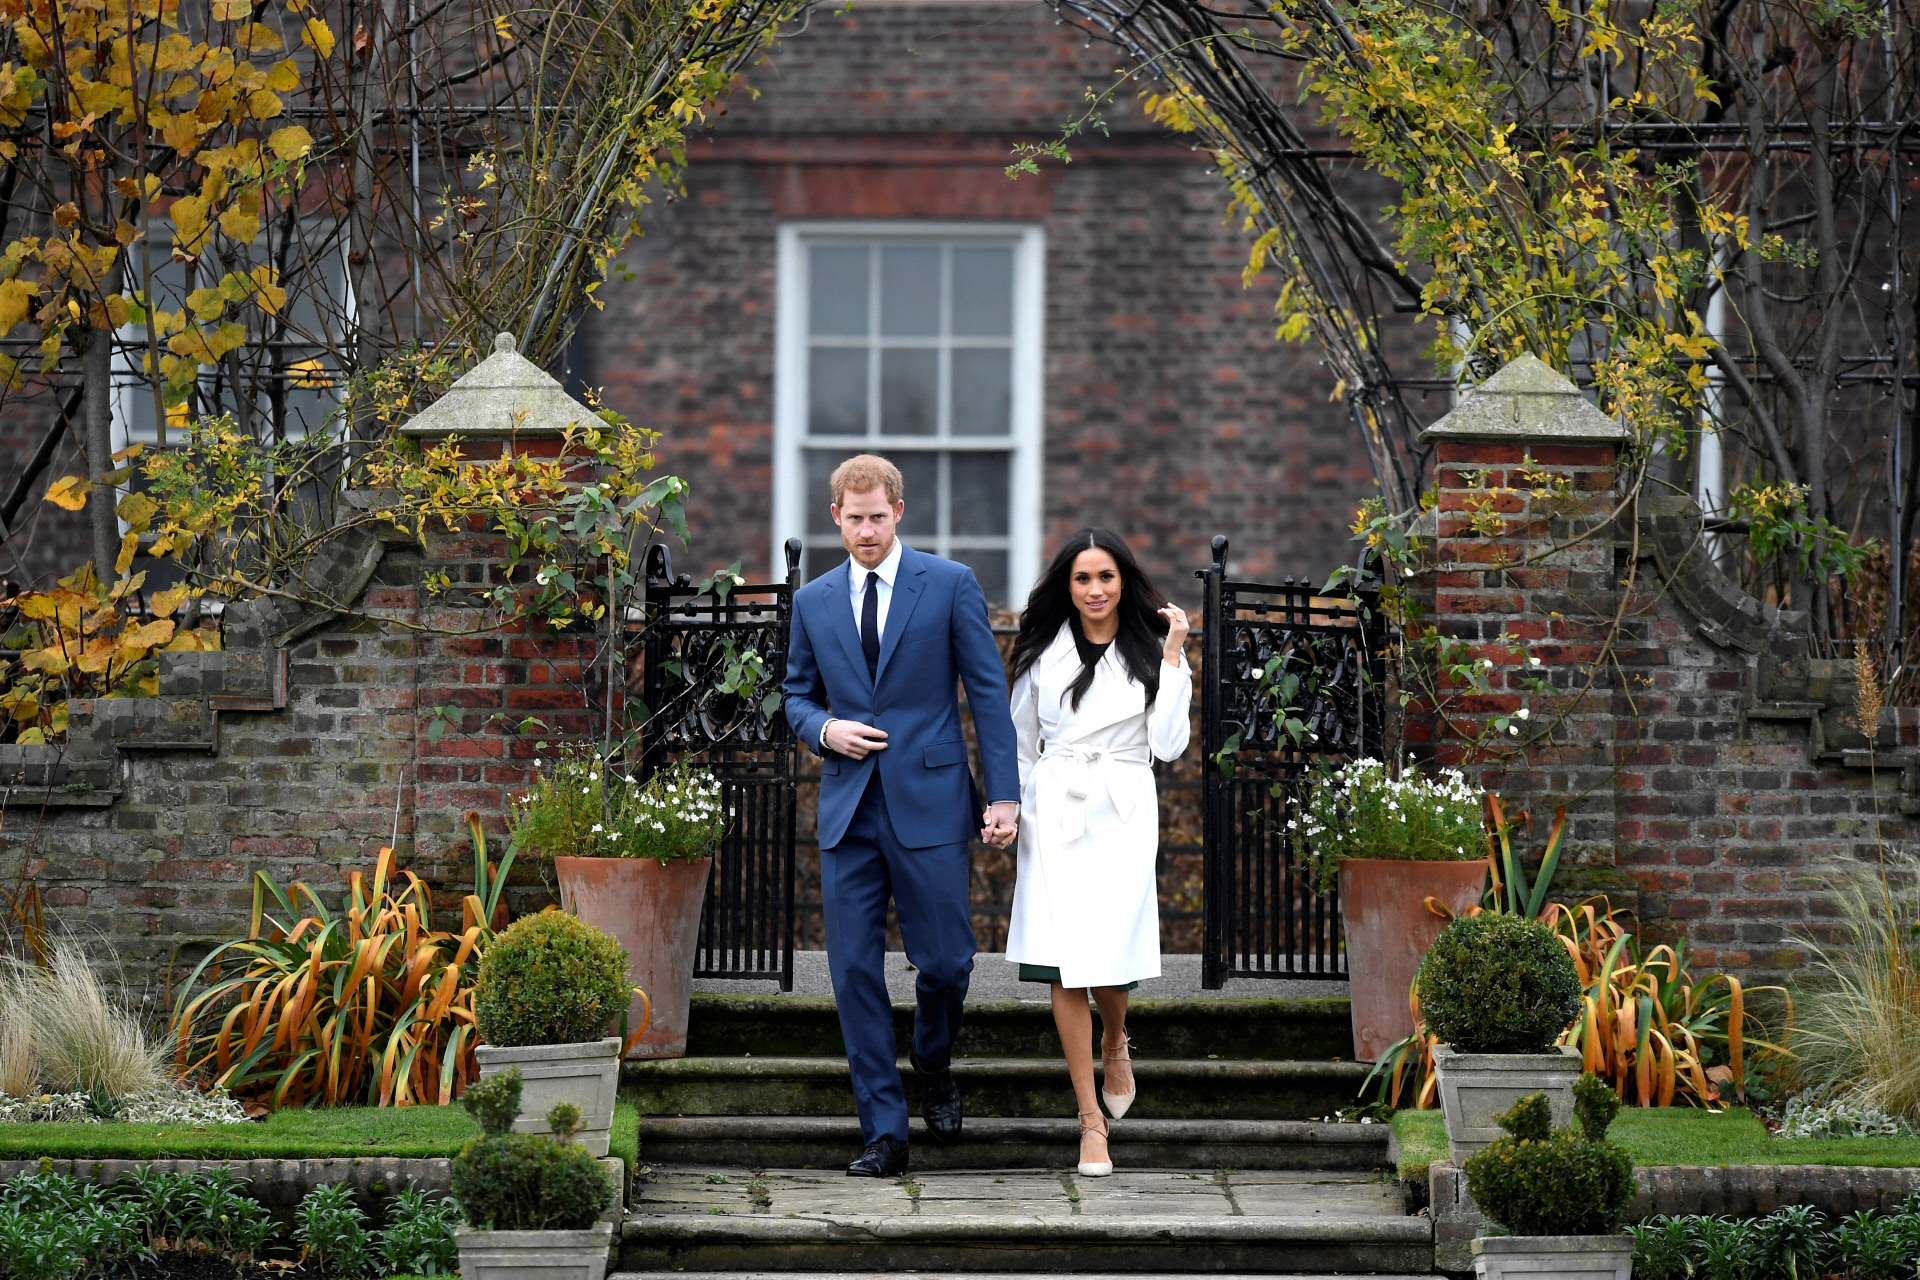 DL a01165161 002. El príncipe Harry y Meghan Markle